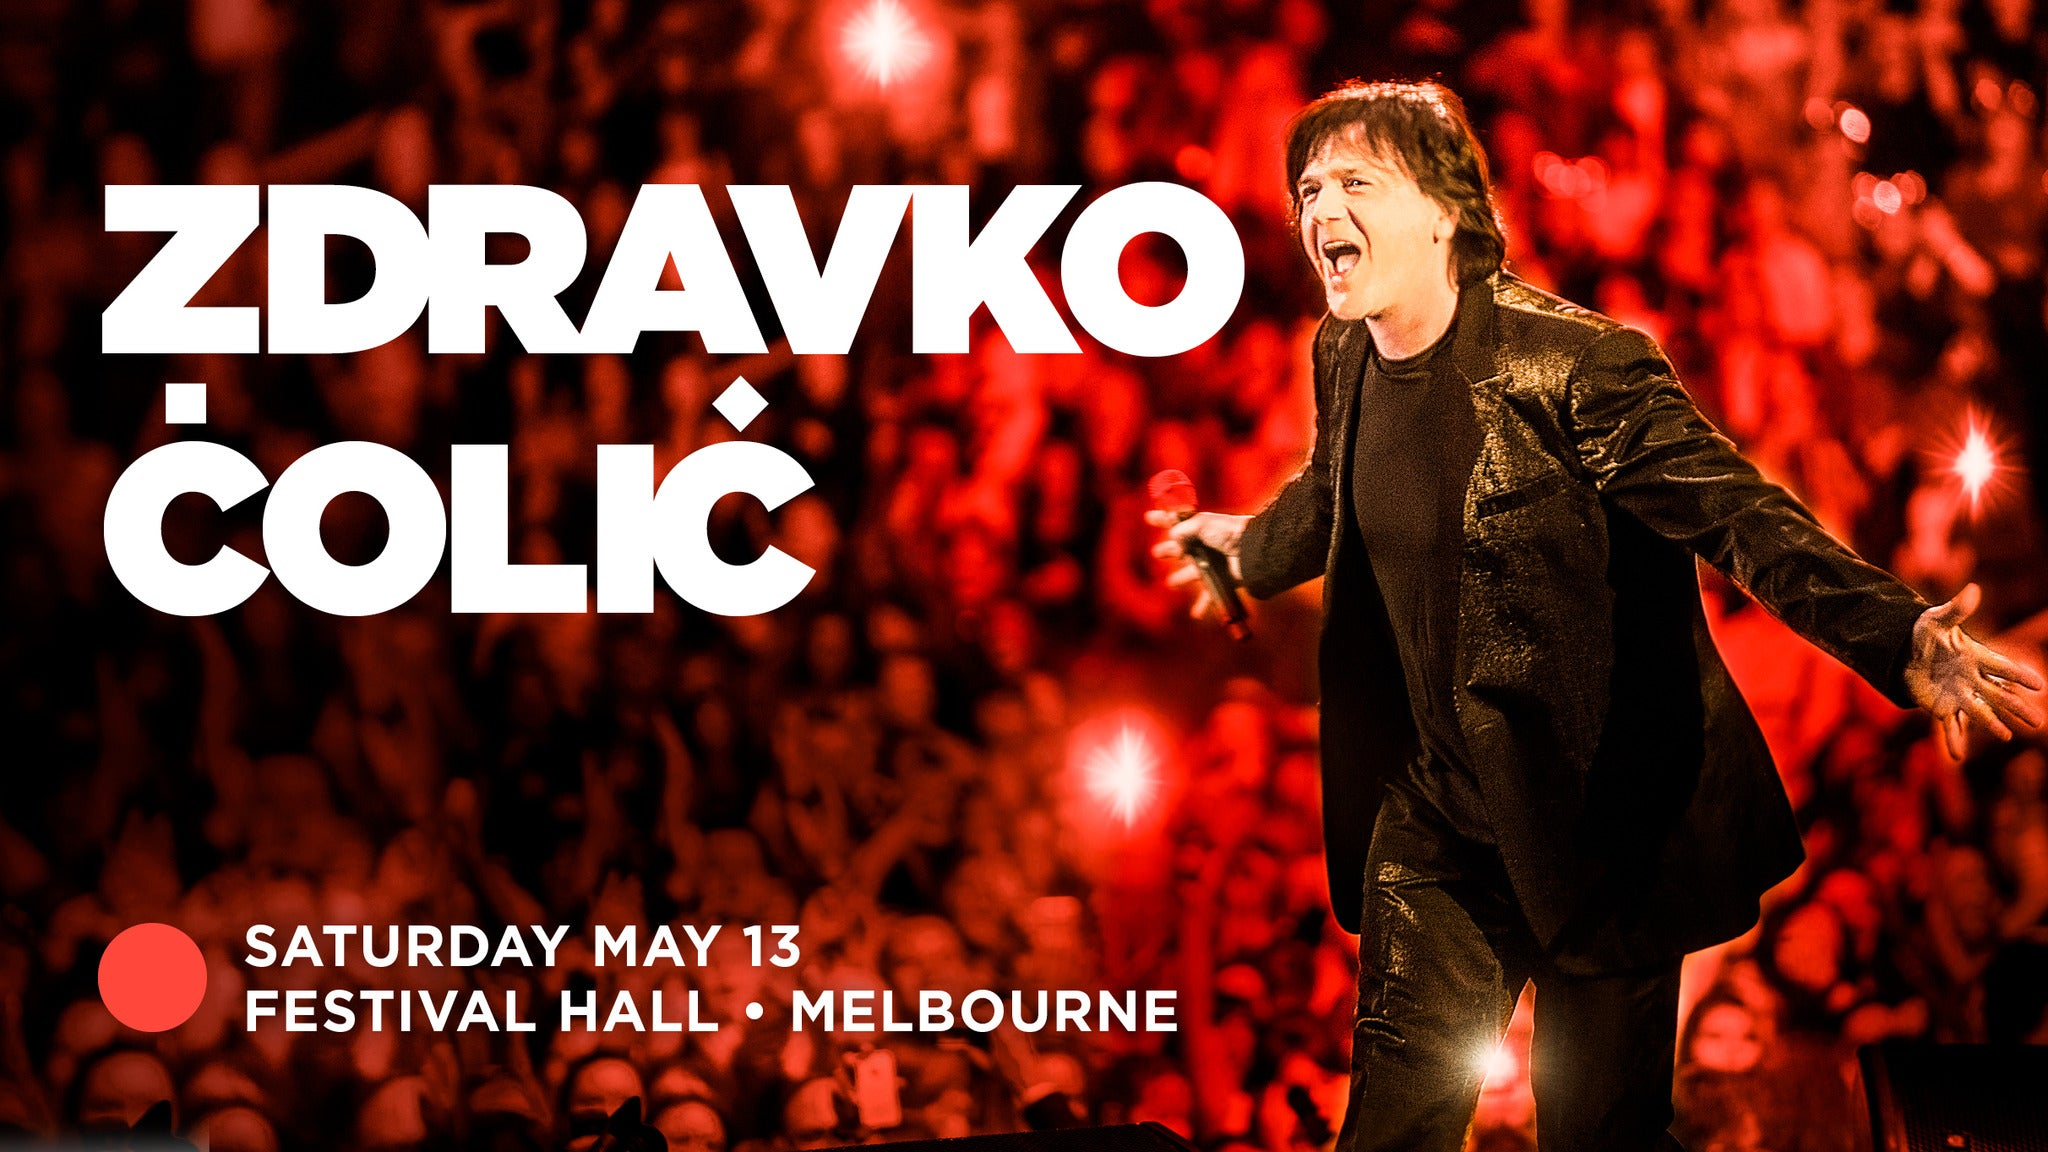 Pure Live Music Presents Zdravko Colic at The Pageant